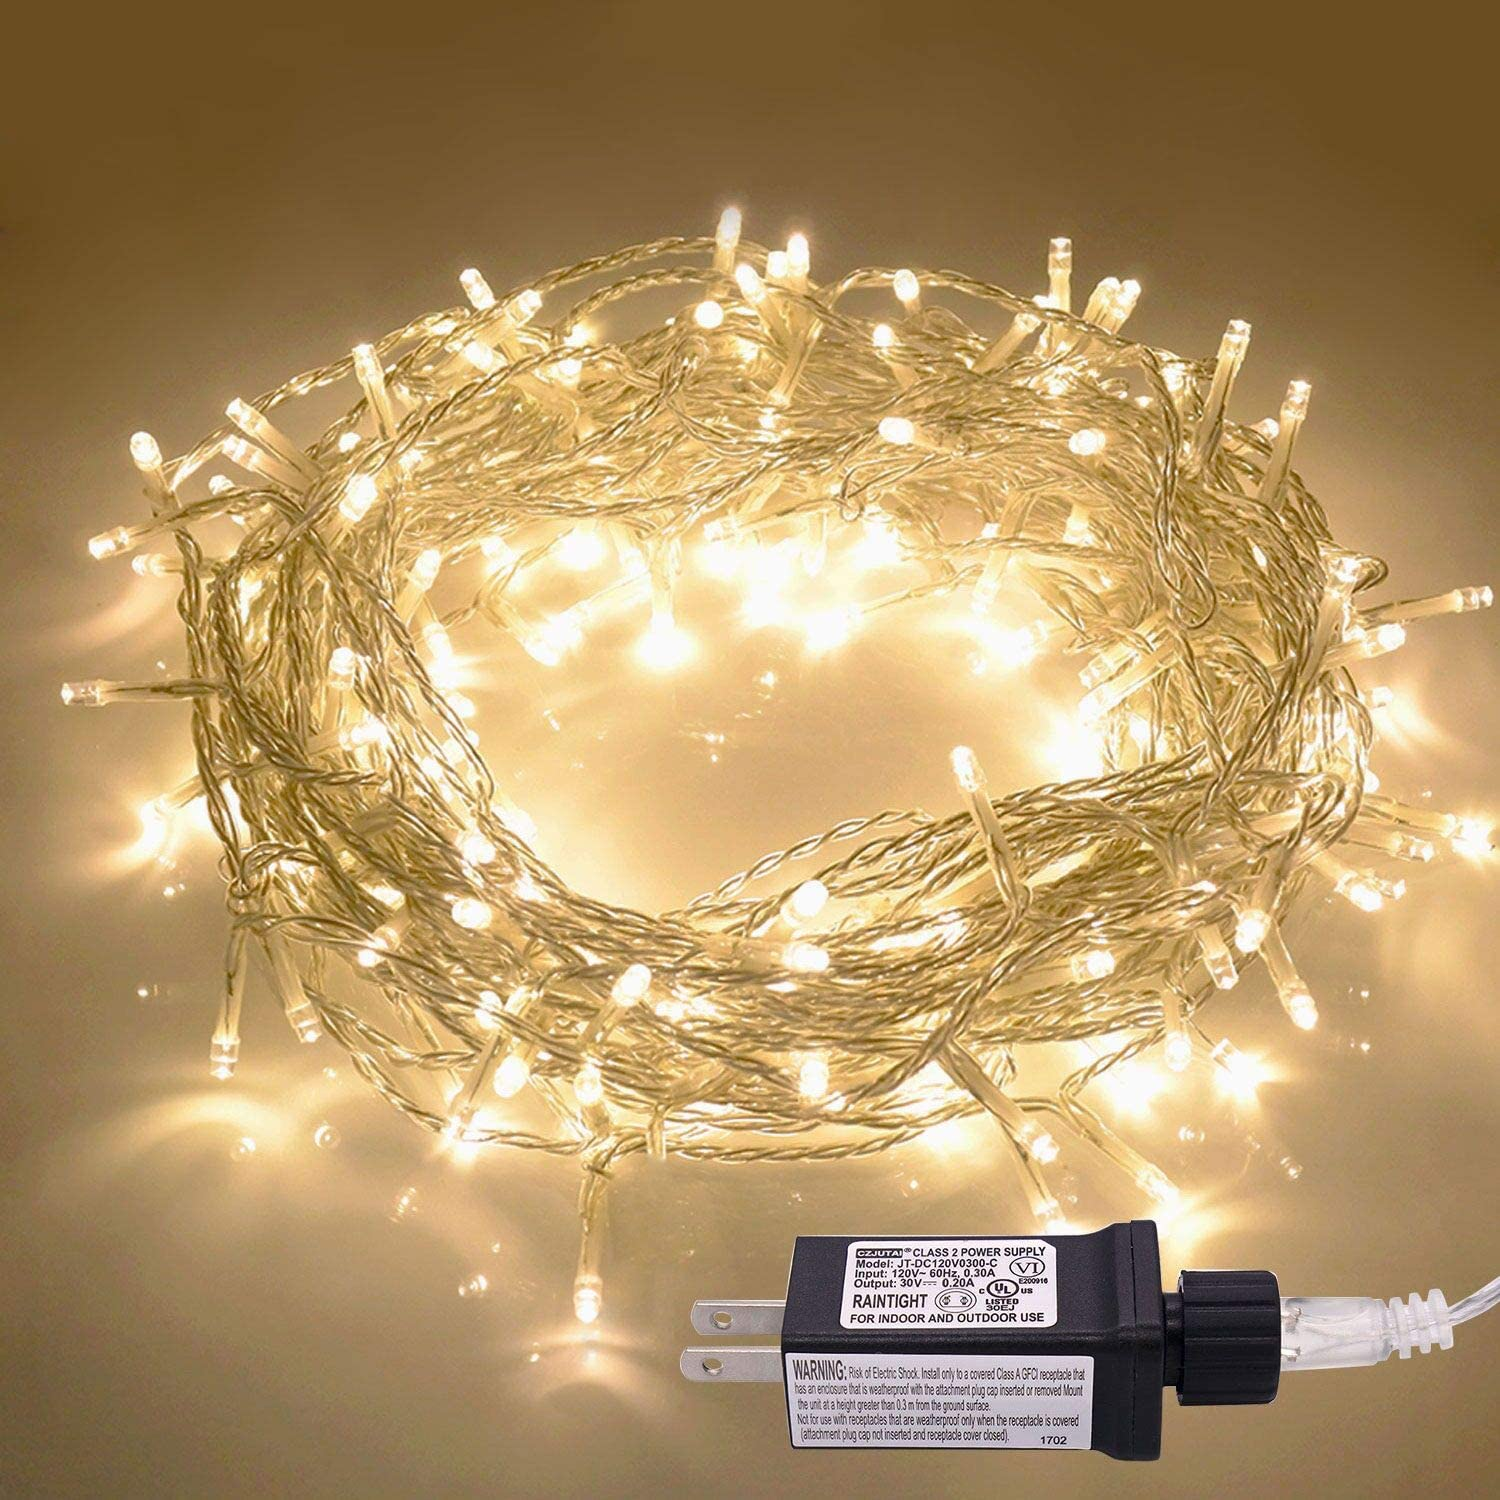 JMEXSUSS 30V 8 Mode 200LED 82.1ft Indoor String Light Christmas Lights Fairy String Lights for Homes, Christmas Tree, Wedding Party, Room, Indoor Wall Decoration, UL588 Approved(200LED, Warm White)